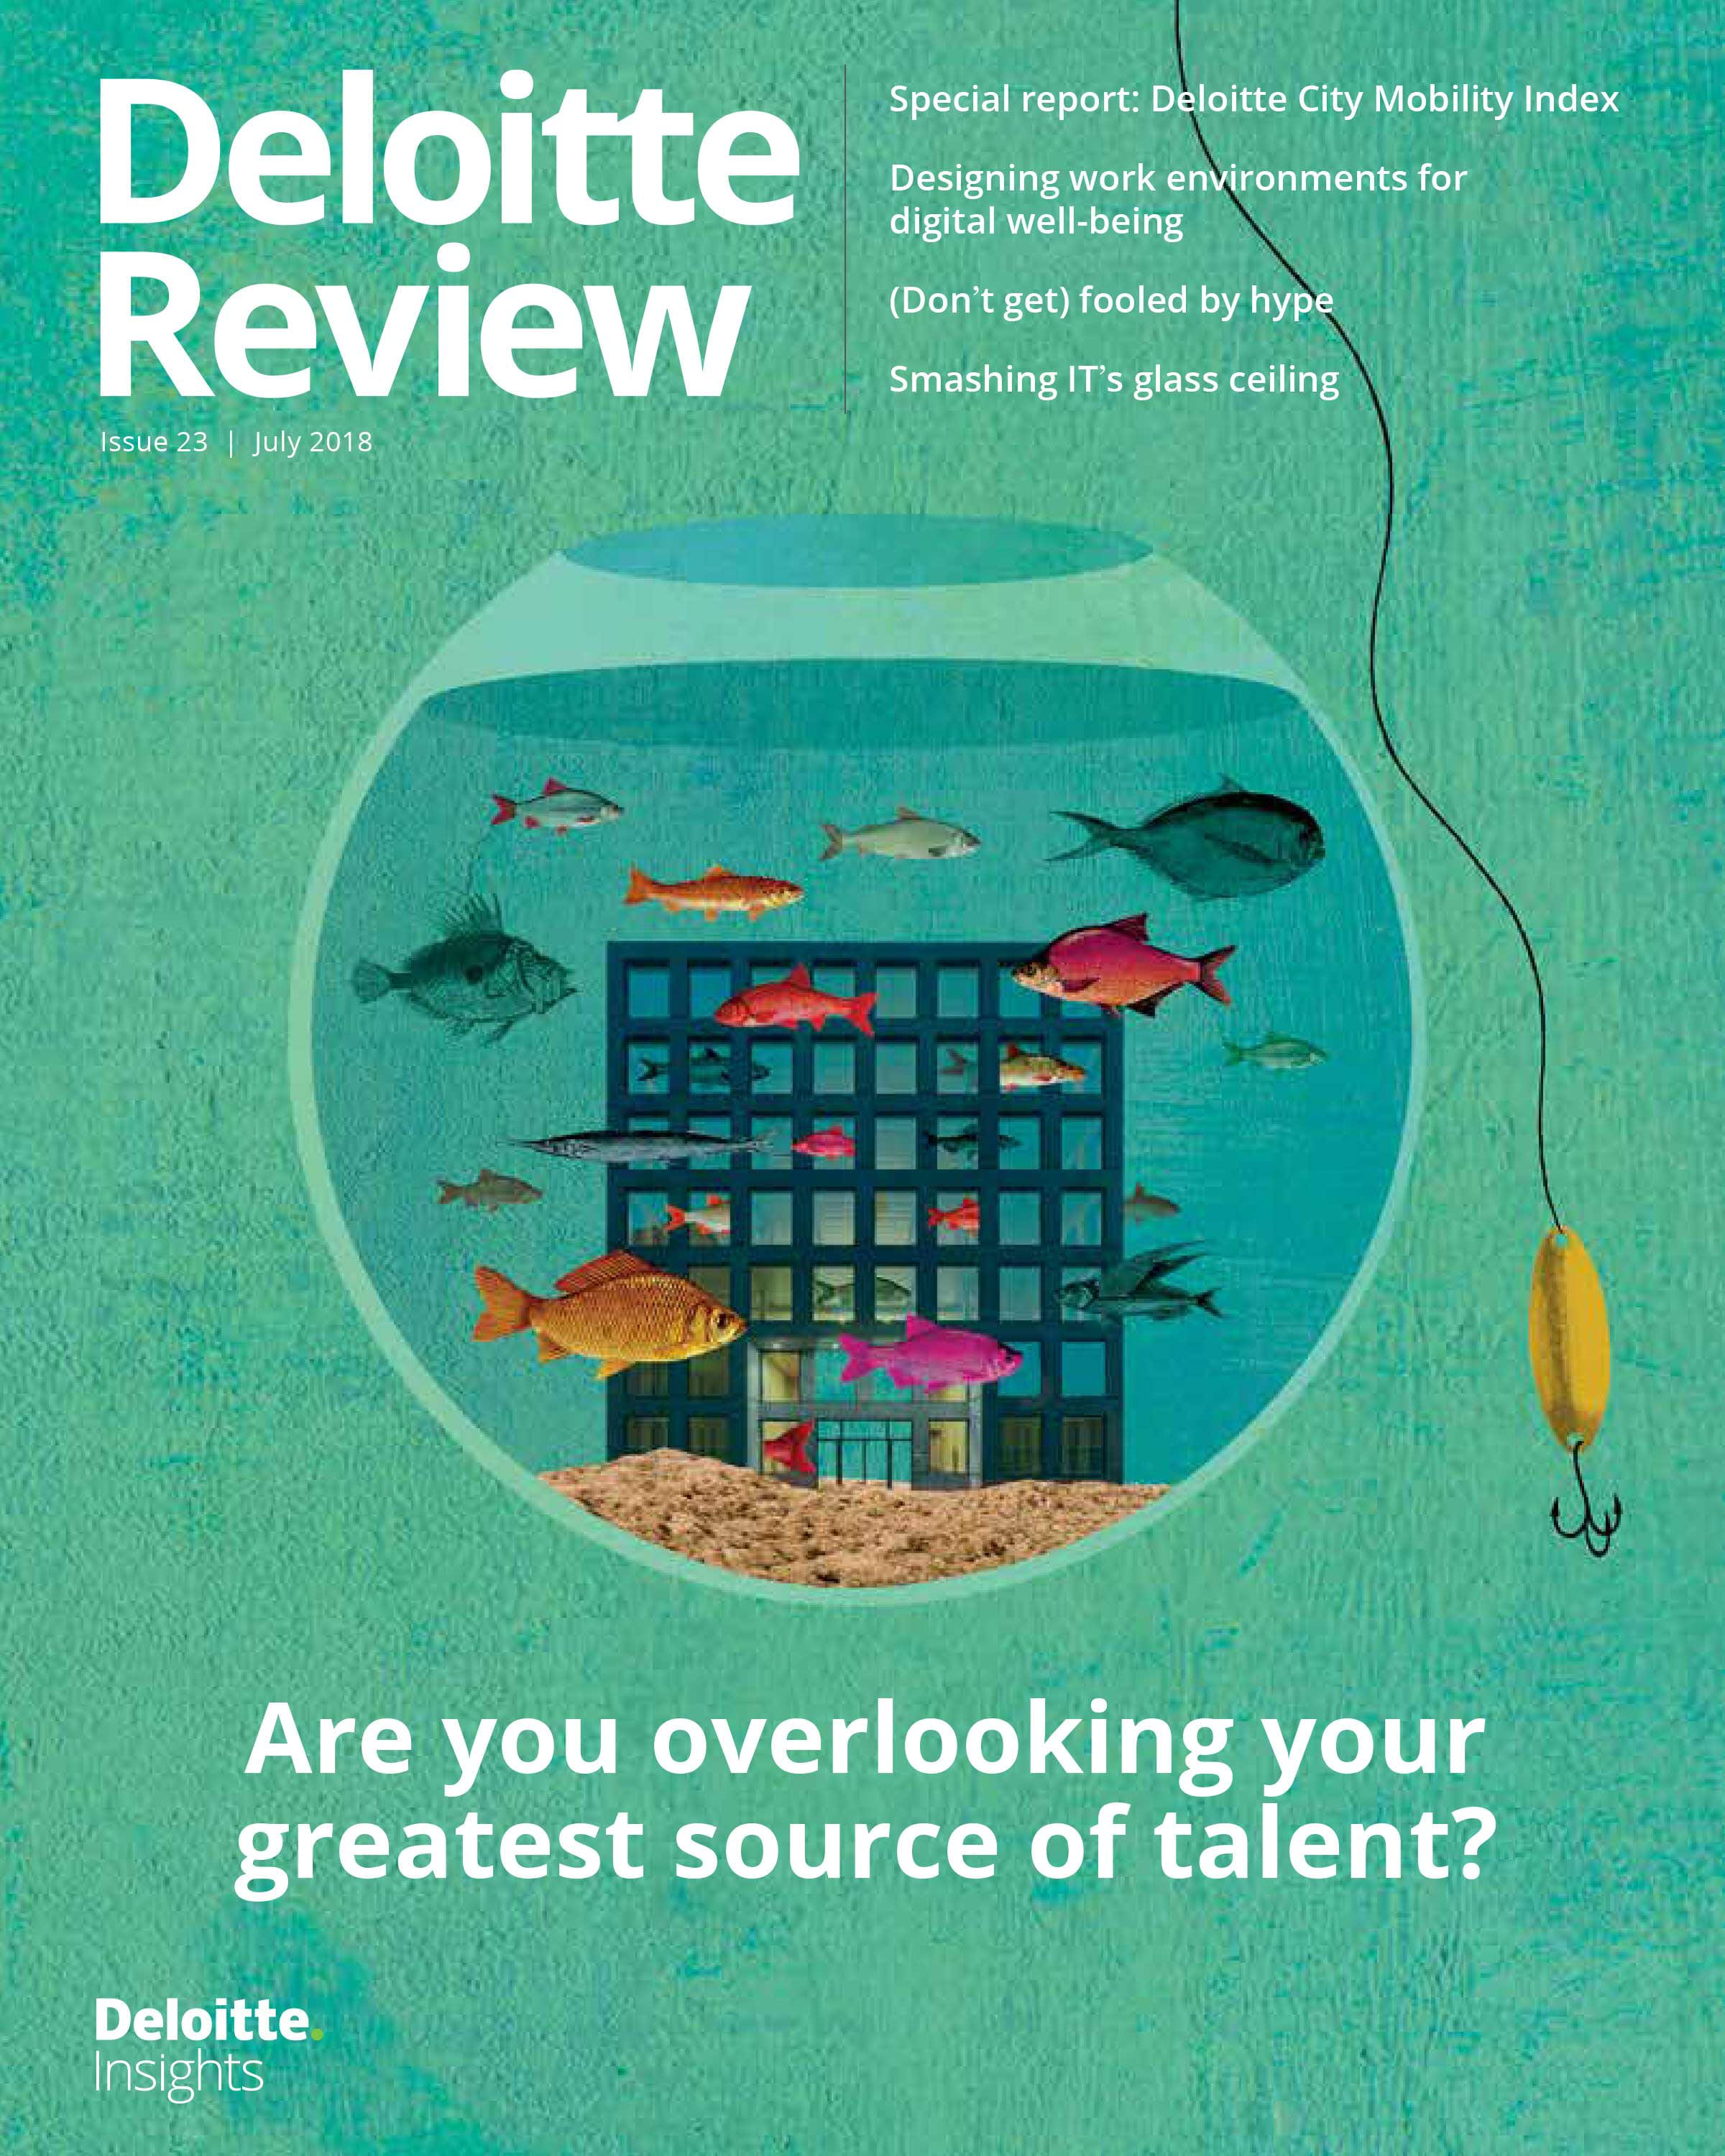 Deloitte Review issue 23